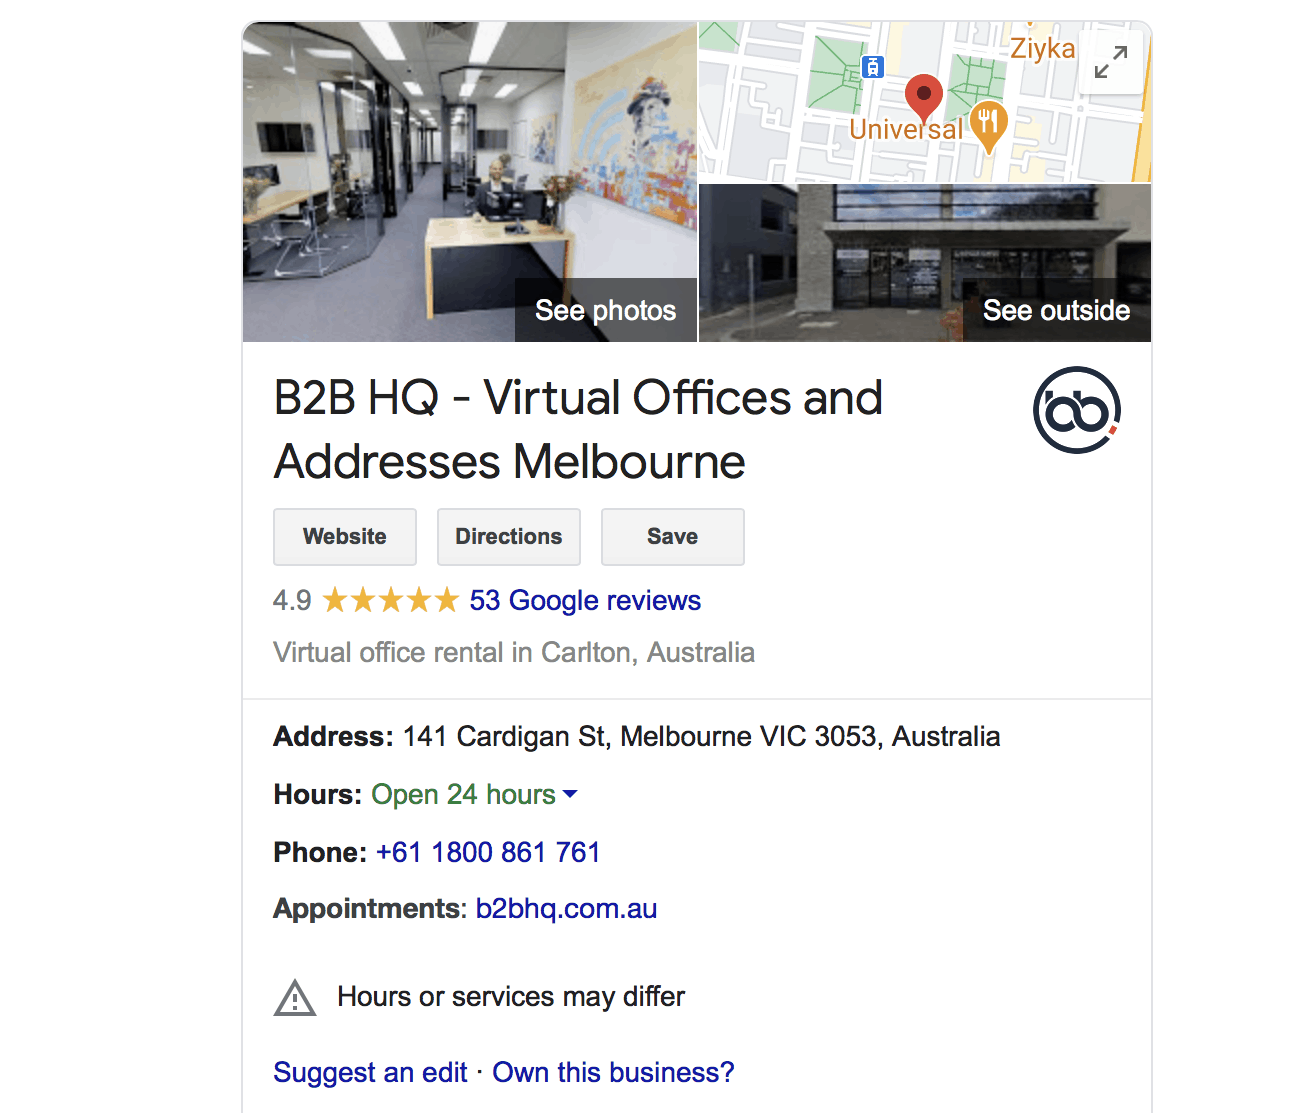 Google My Business For B2B HQ Virtual Offices